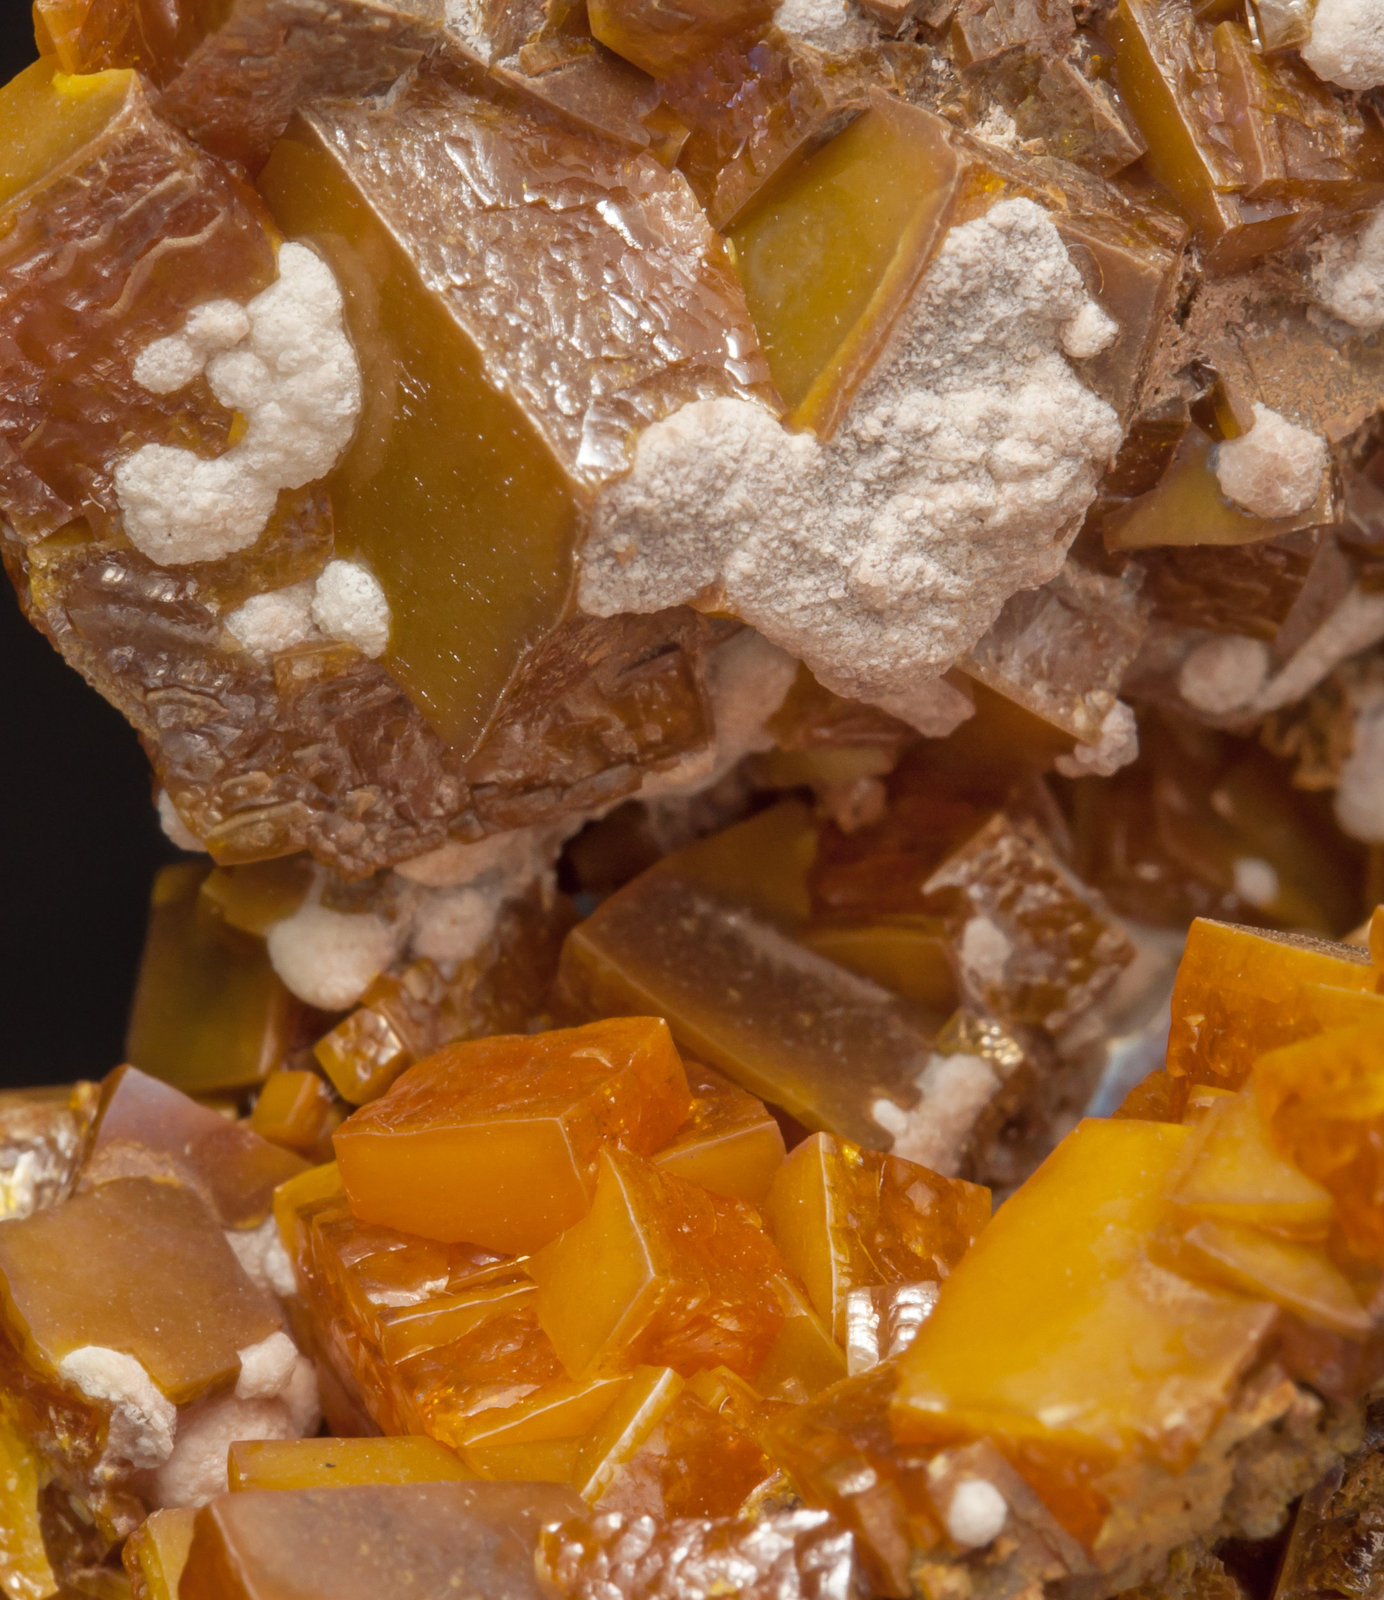 specimens/s_imagesAE7/Wulfenite-MF36AE7d.jpg